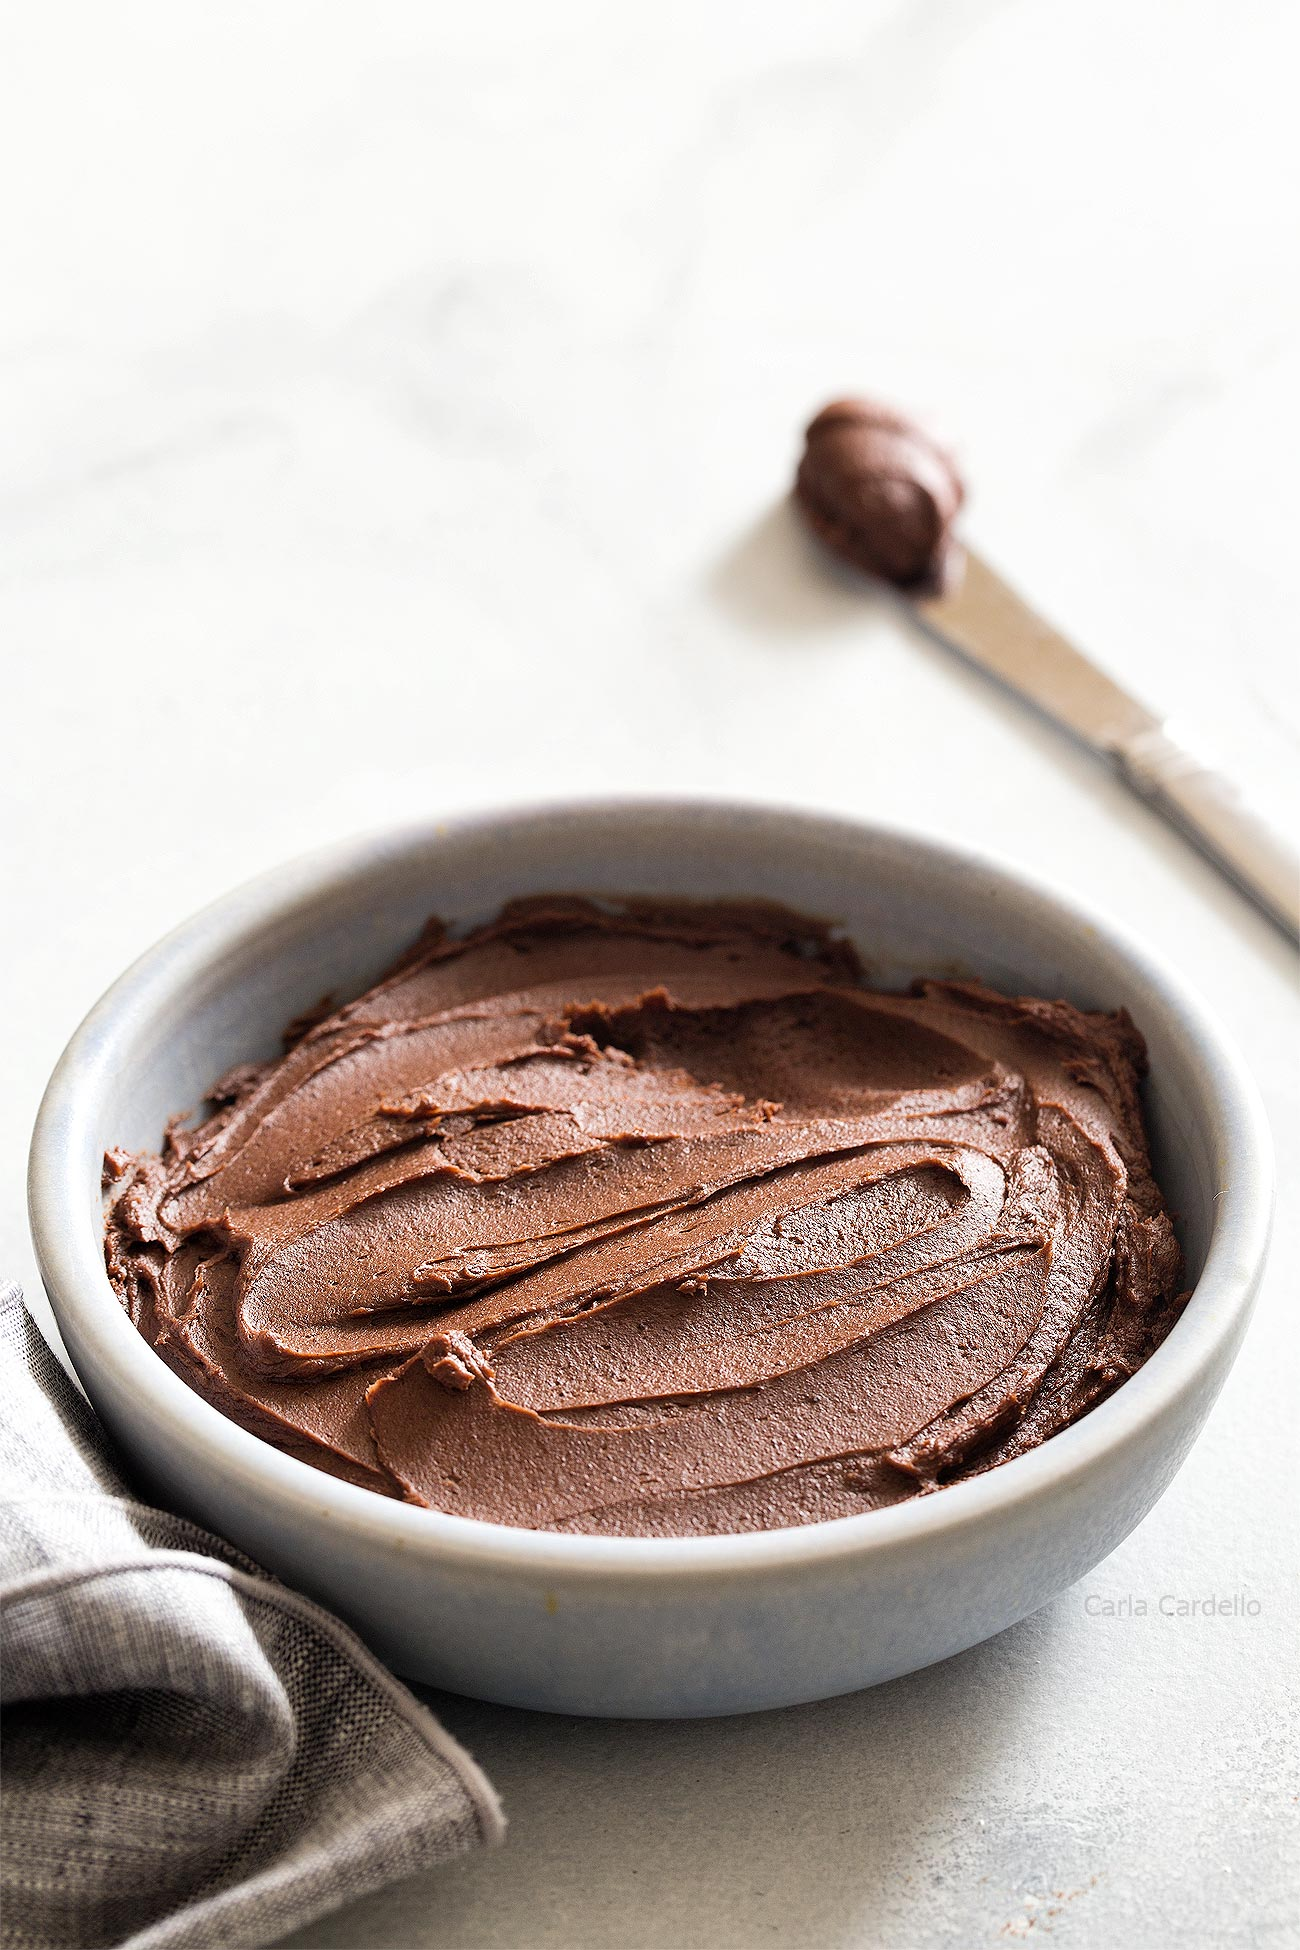 Looking for the best chocolate buttercream recipe without leftovers? Look no further than this Small Batch Chocolate Frosting!